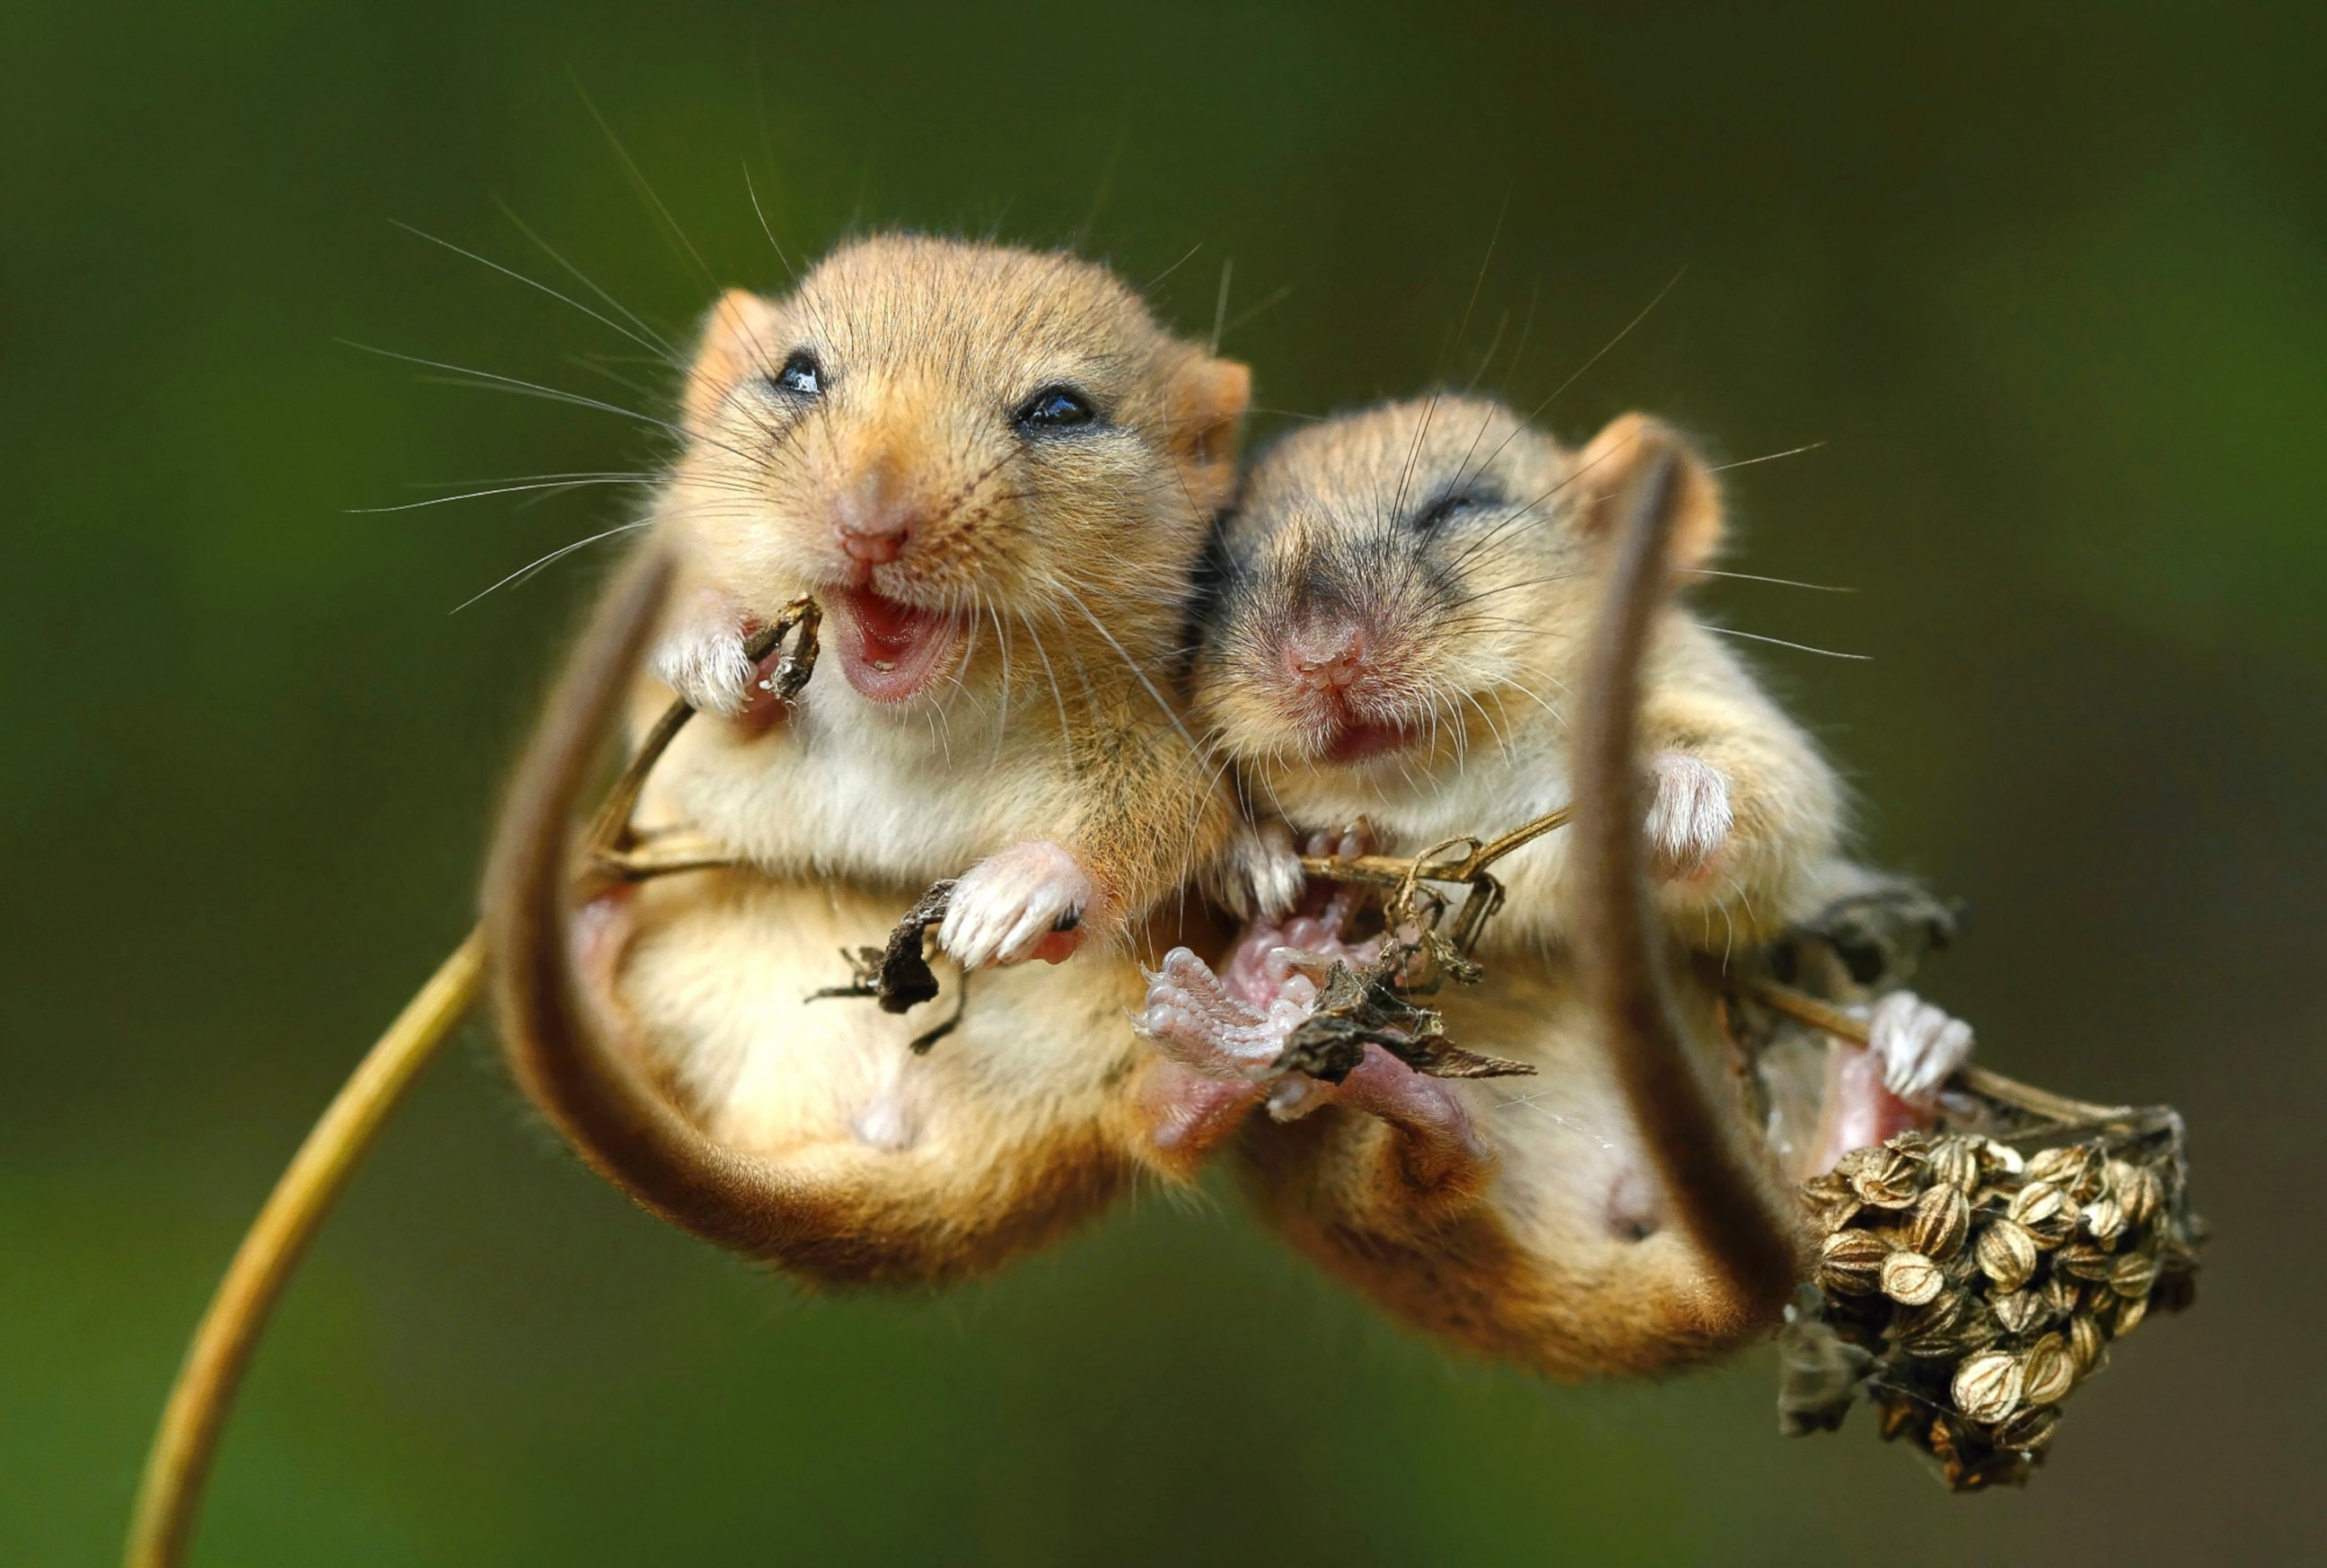 Tiny Mice Say Cheese